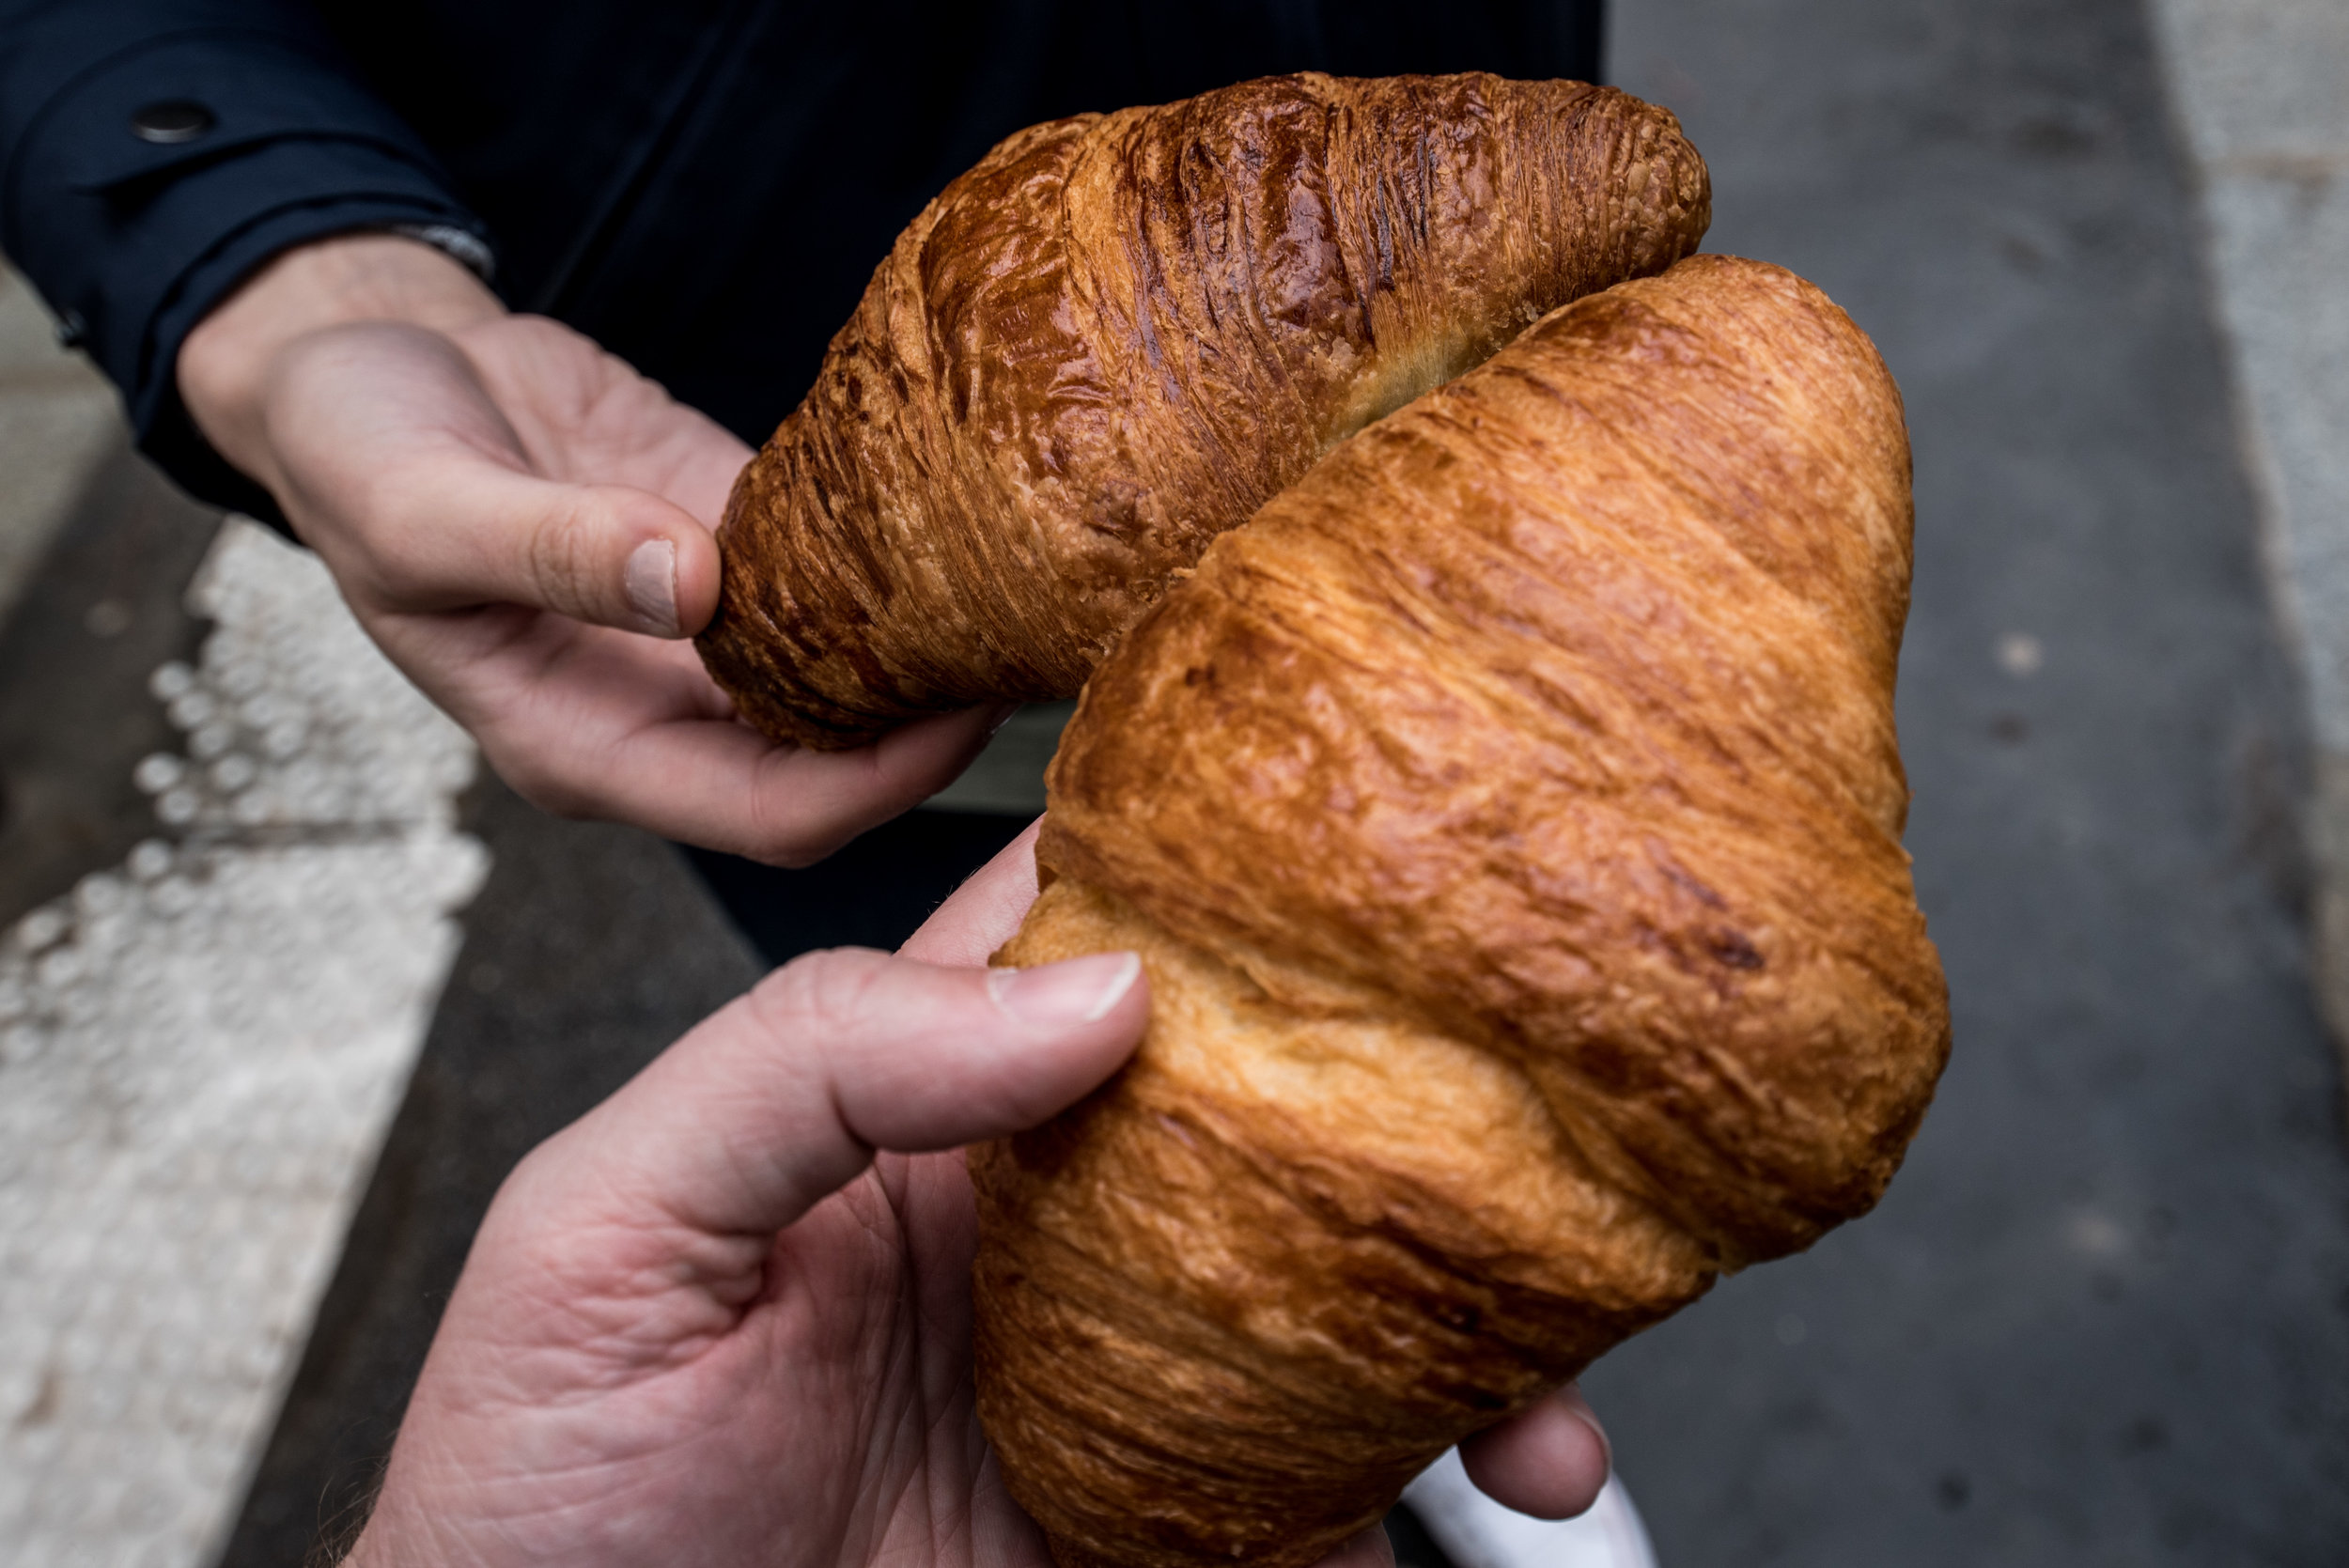 Straight croissants are made with butter. Curved croissants are made with margarine. You want the straight ones.